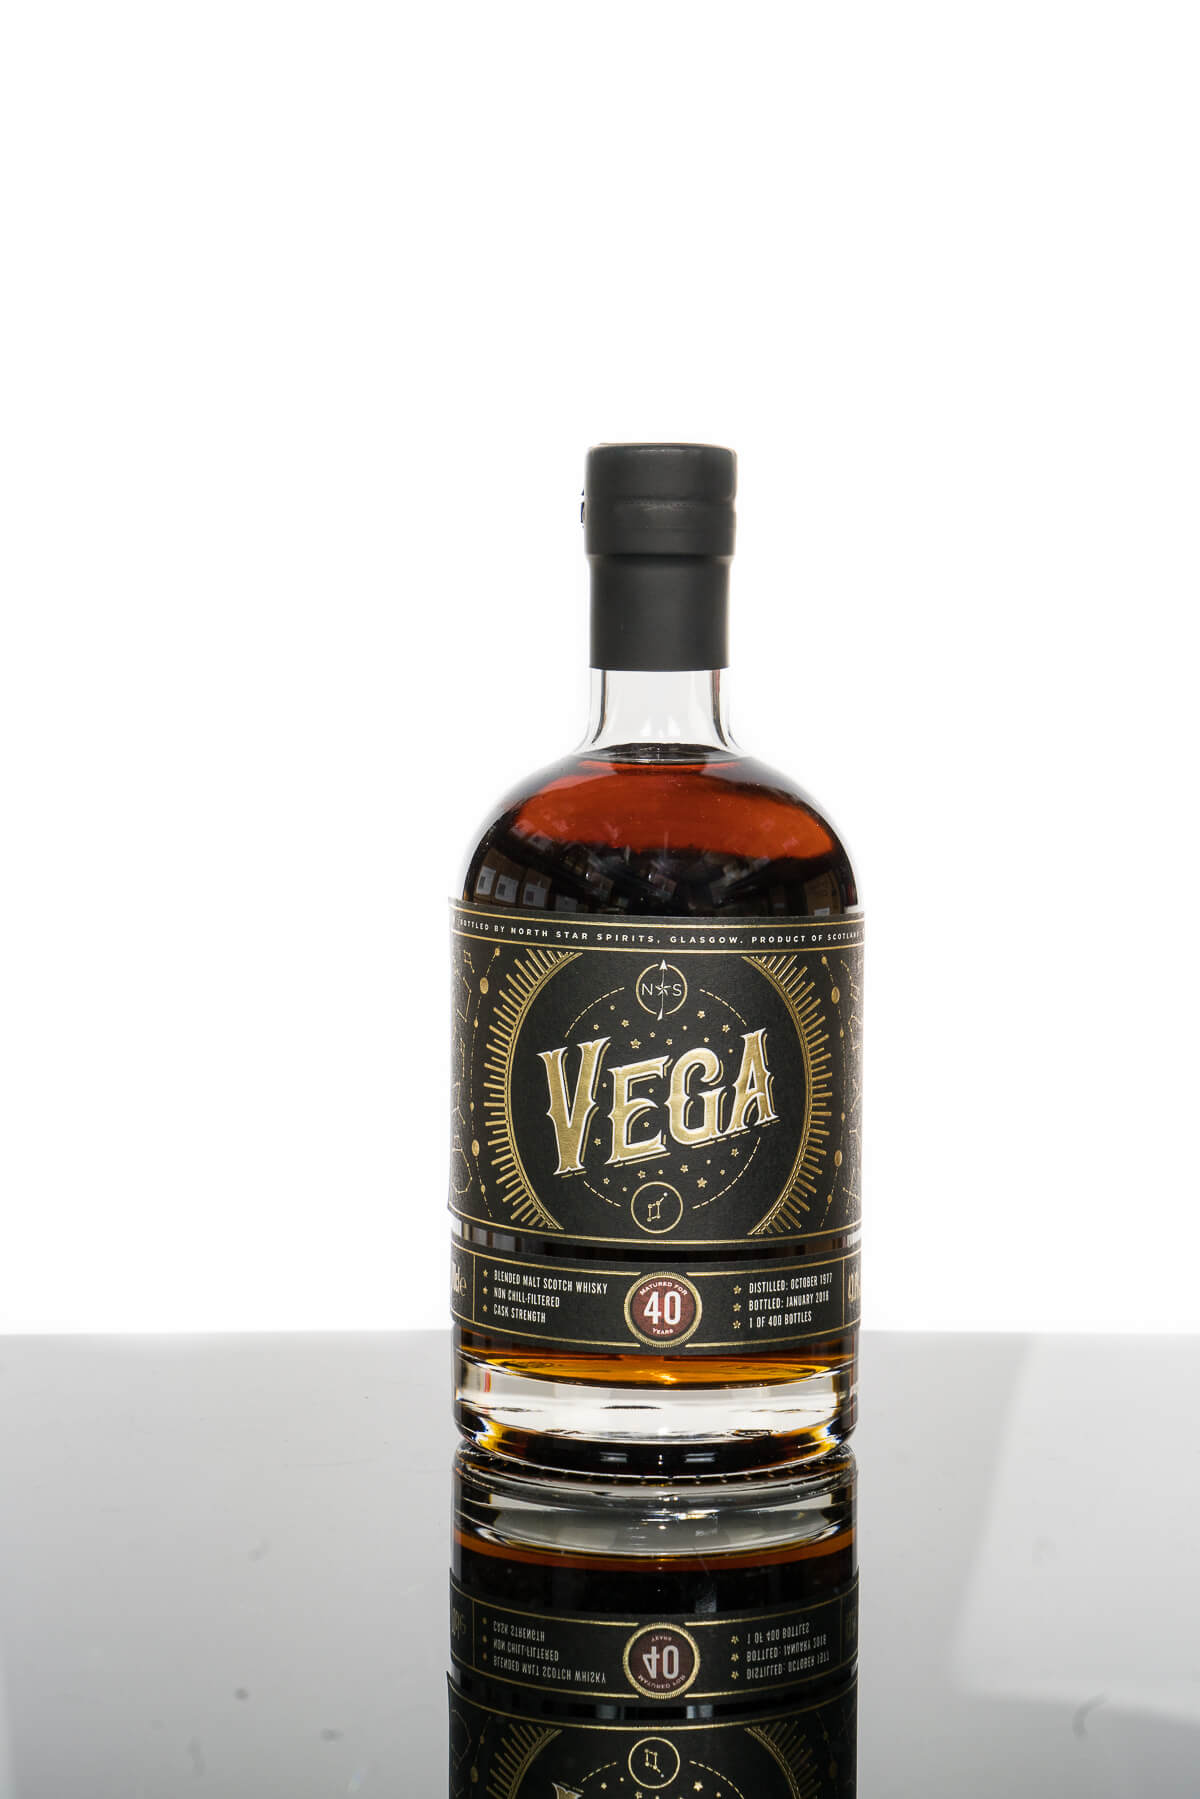 North Star Vega Aged 40 Years Blended Malt Scotch Whisky (700ml)